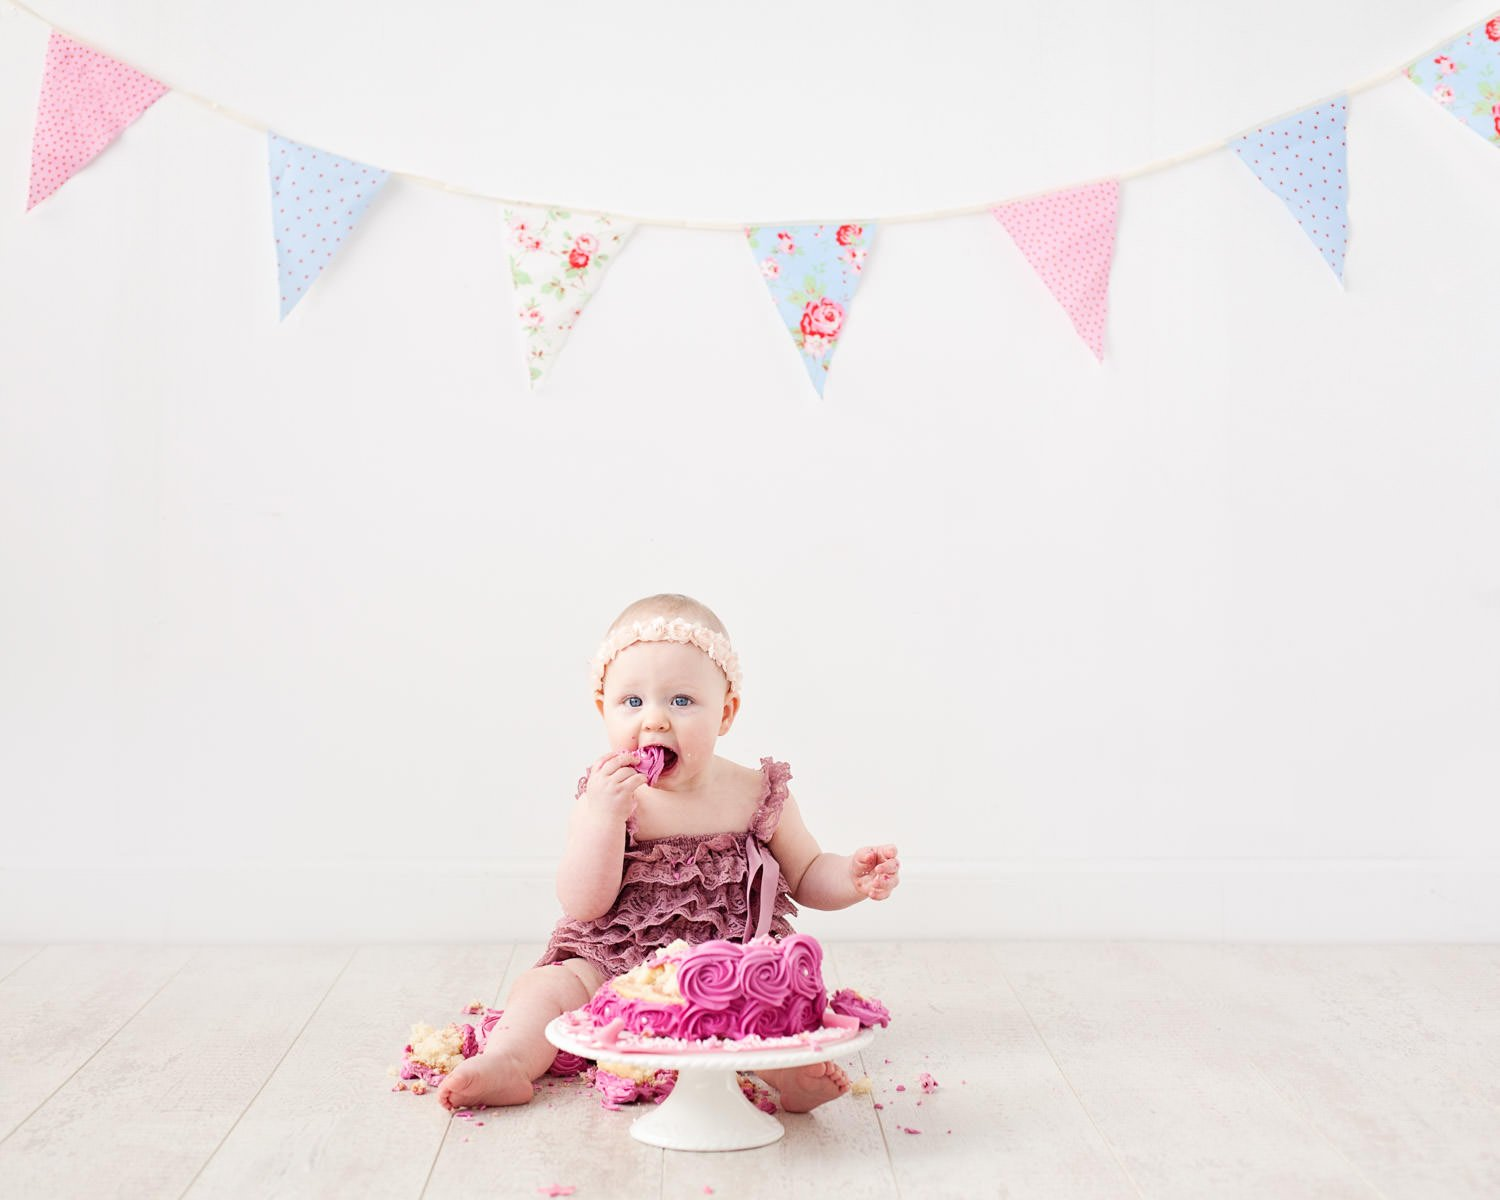 Girl eating cake in pink dress during cake smash photo shoot Glasgow